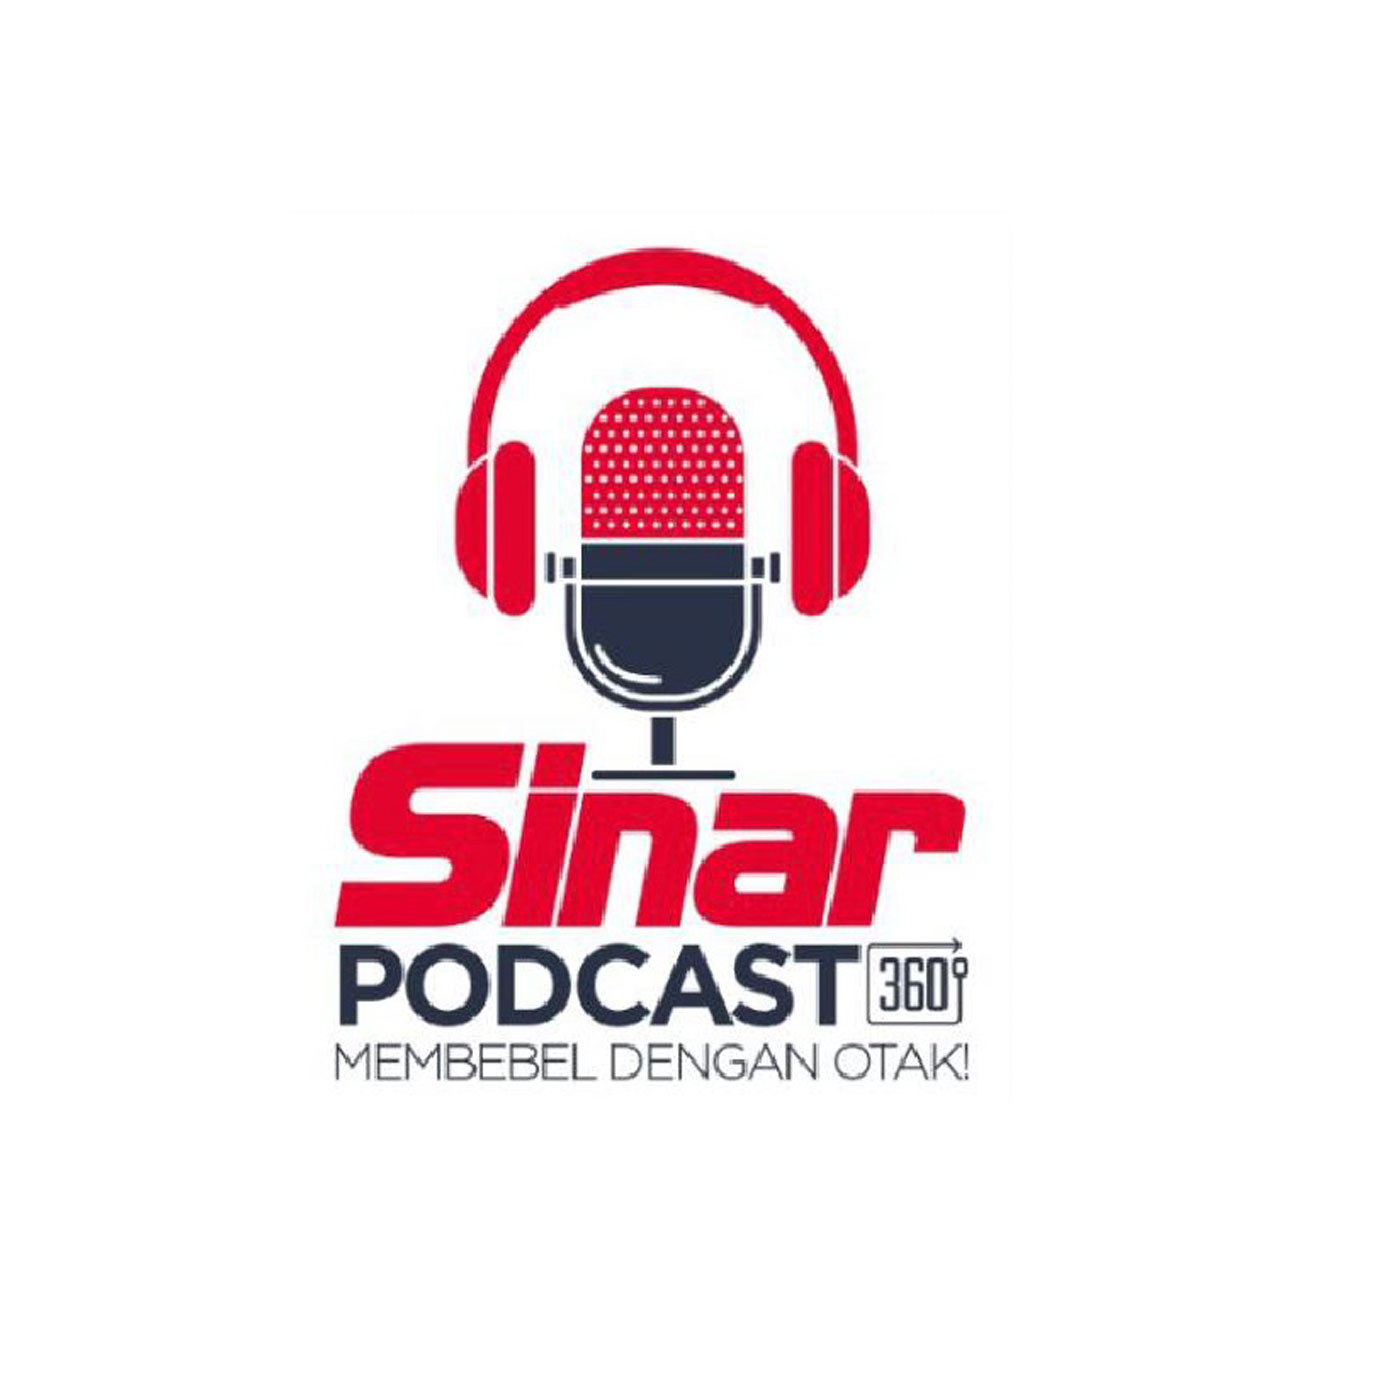 Sinar Harian Podcast